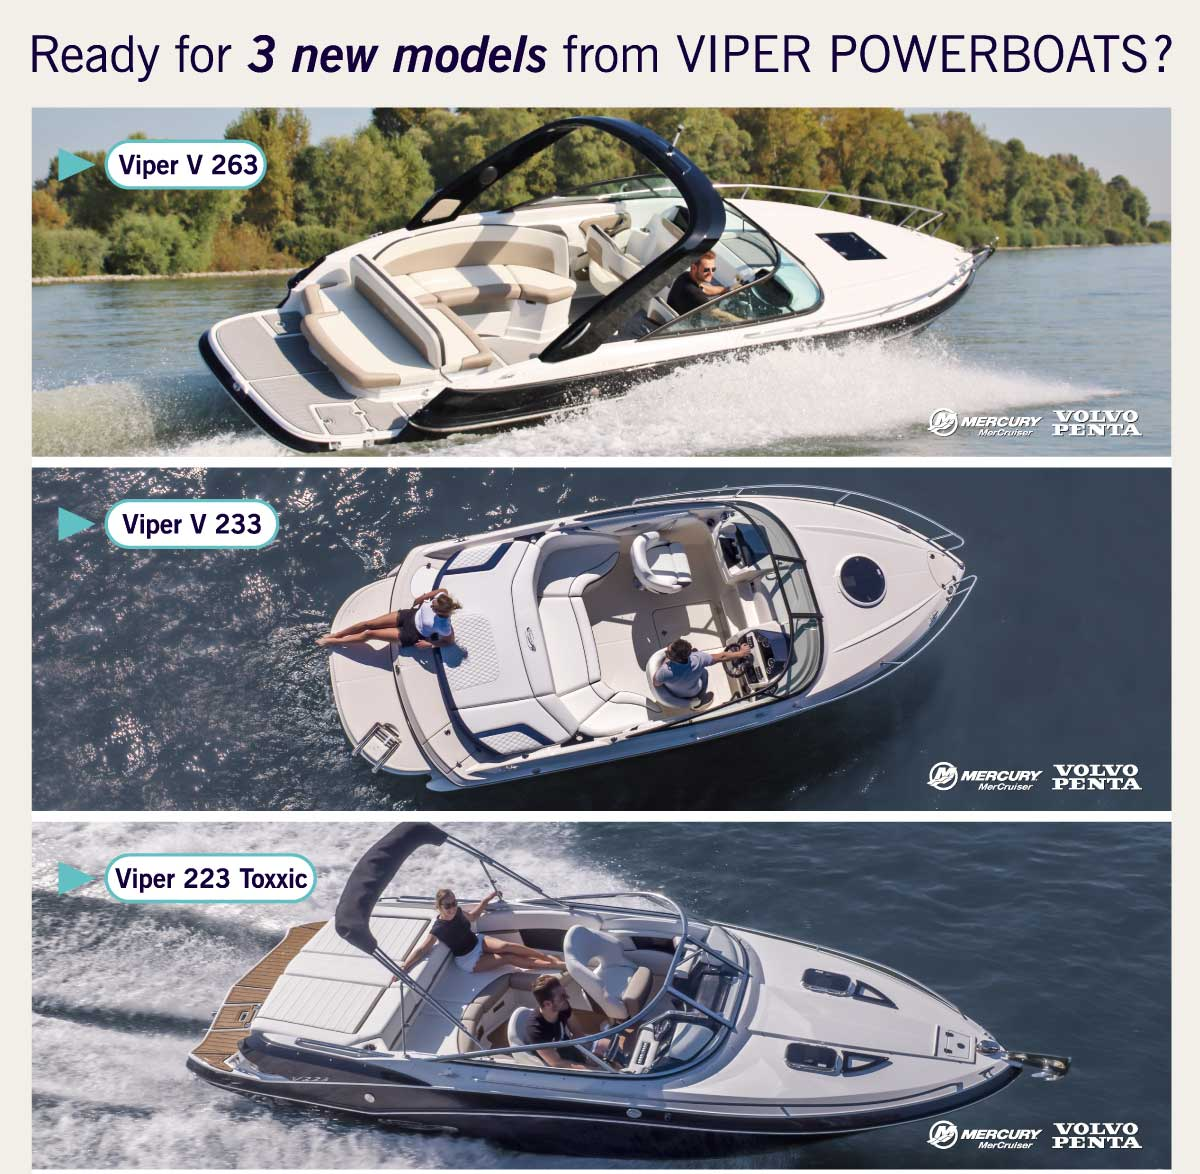 Europe Marine new Viper Powerboats 0620